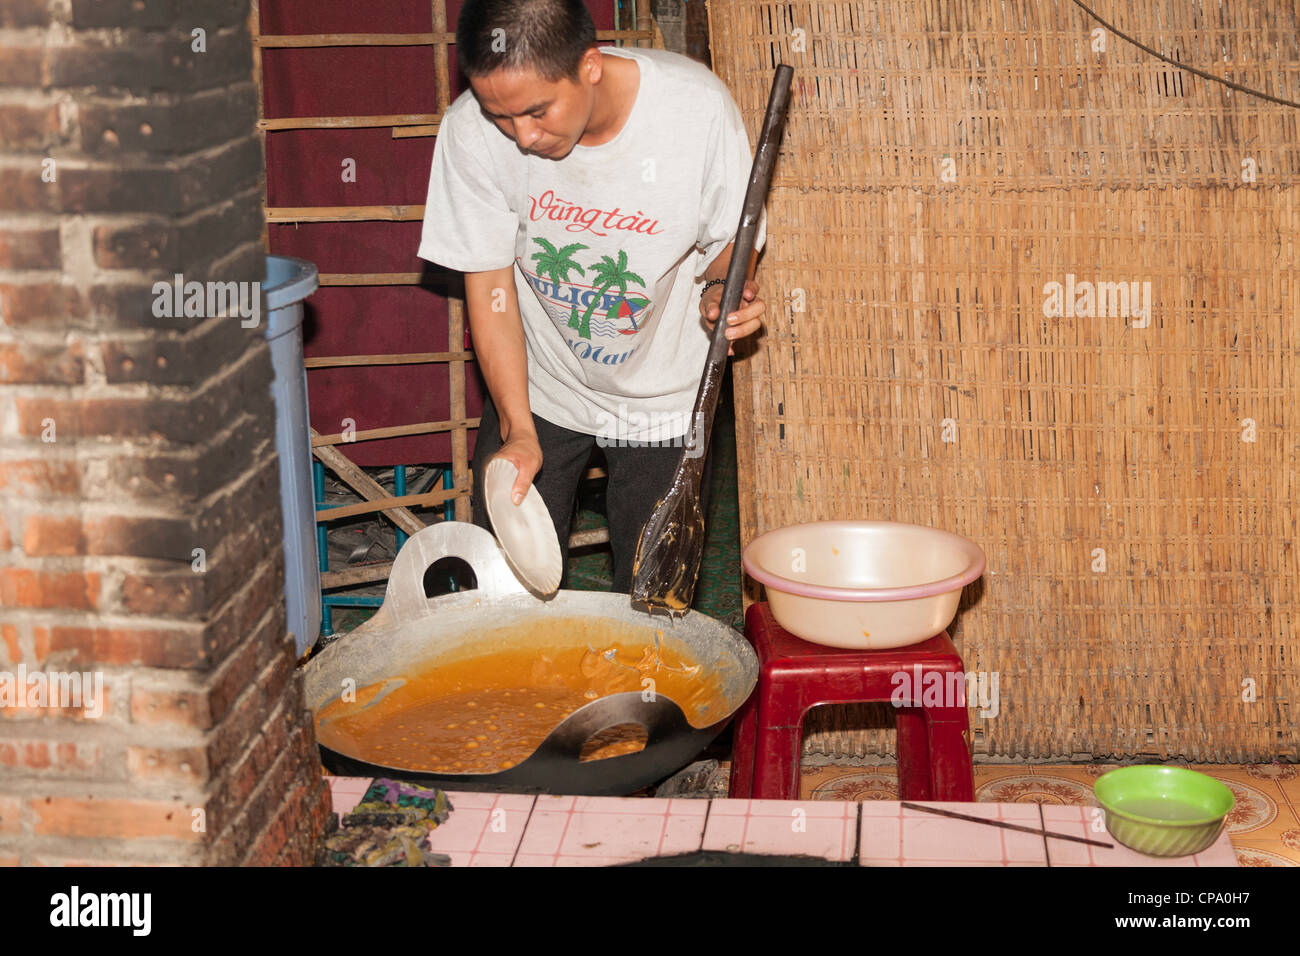 Vietnamese man beside a simmering pan of coconut candy ingredients, Cuu Long, Cai Be, Mekong Delta, Vietnam - Stock Image